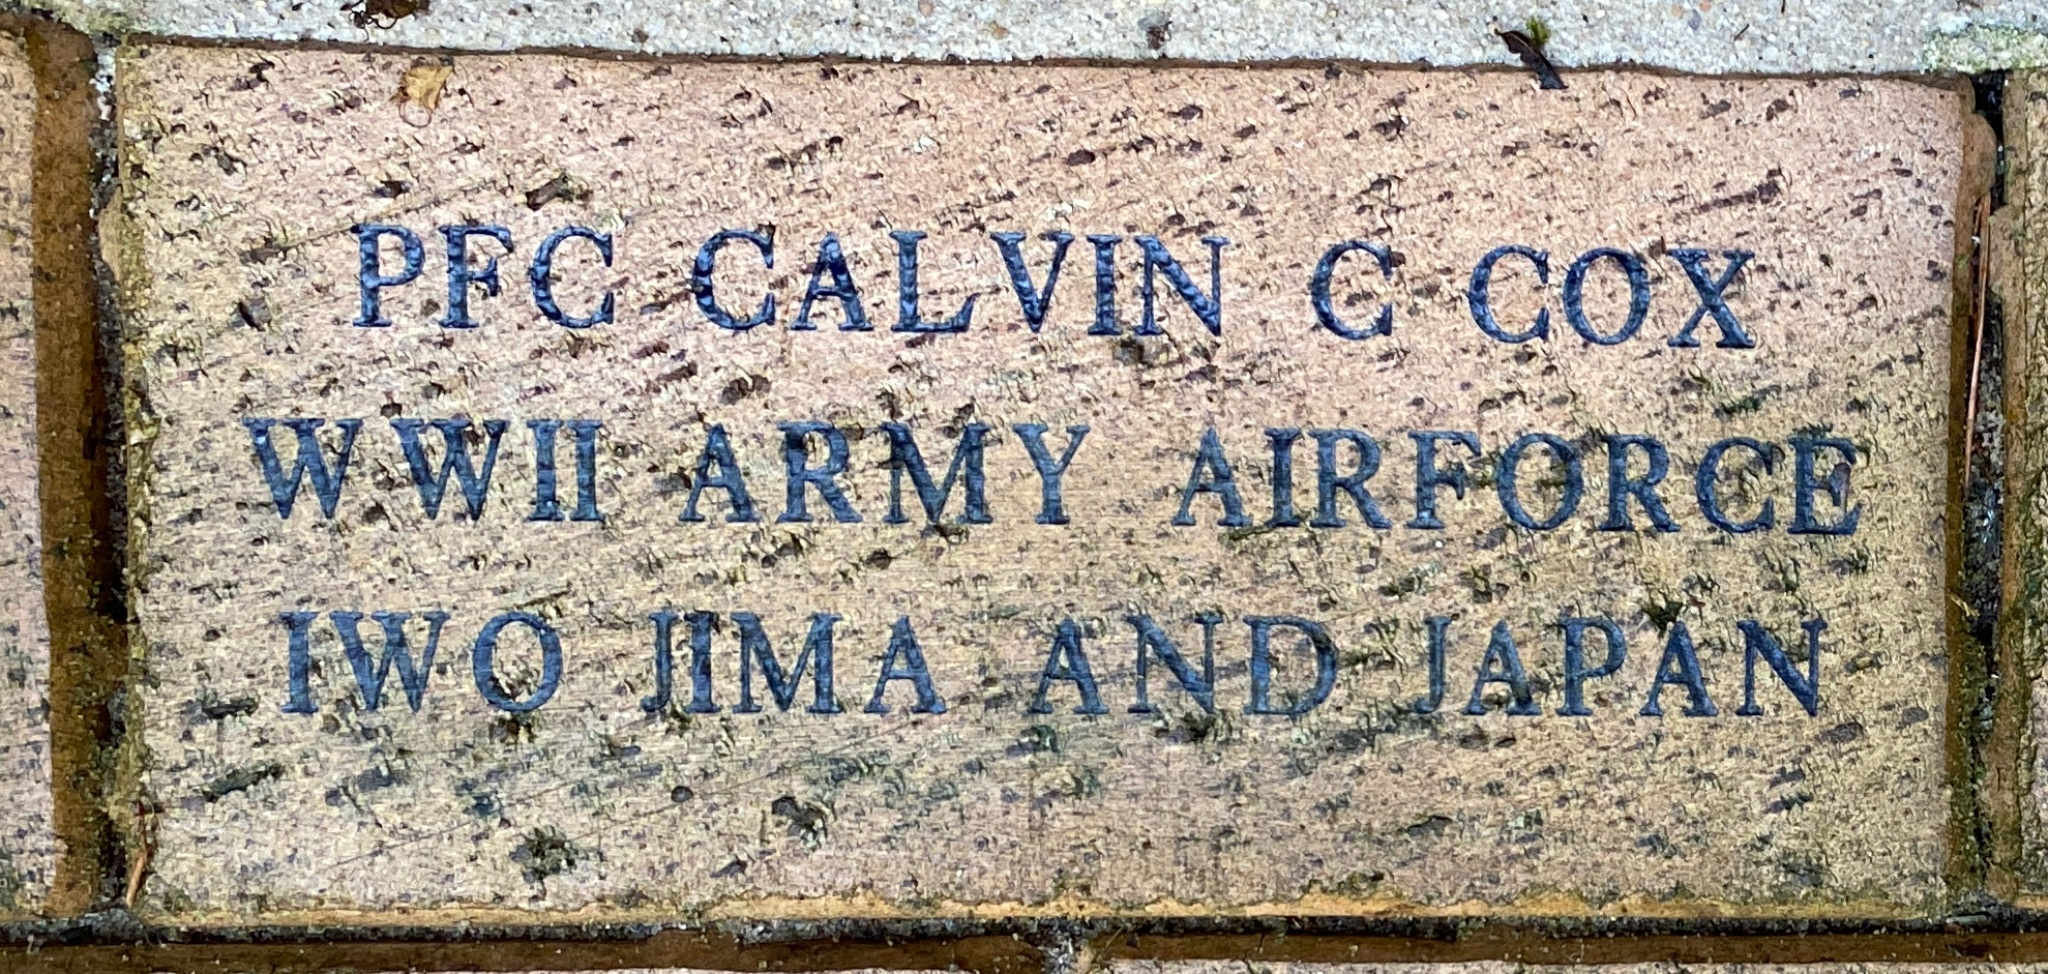 PFC CALVIN C COX WWII ARMY AIRFORCE IWO JIMA AND JAPAN